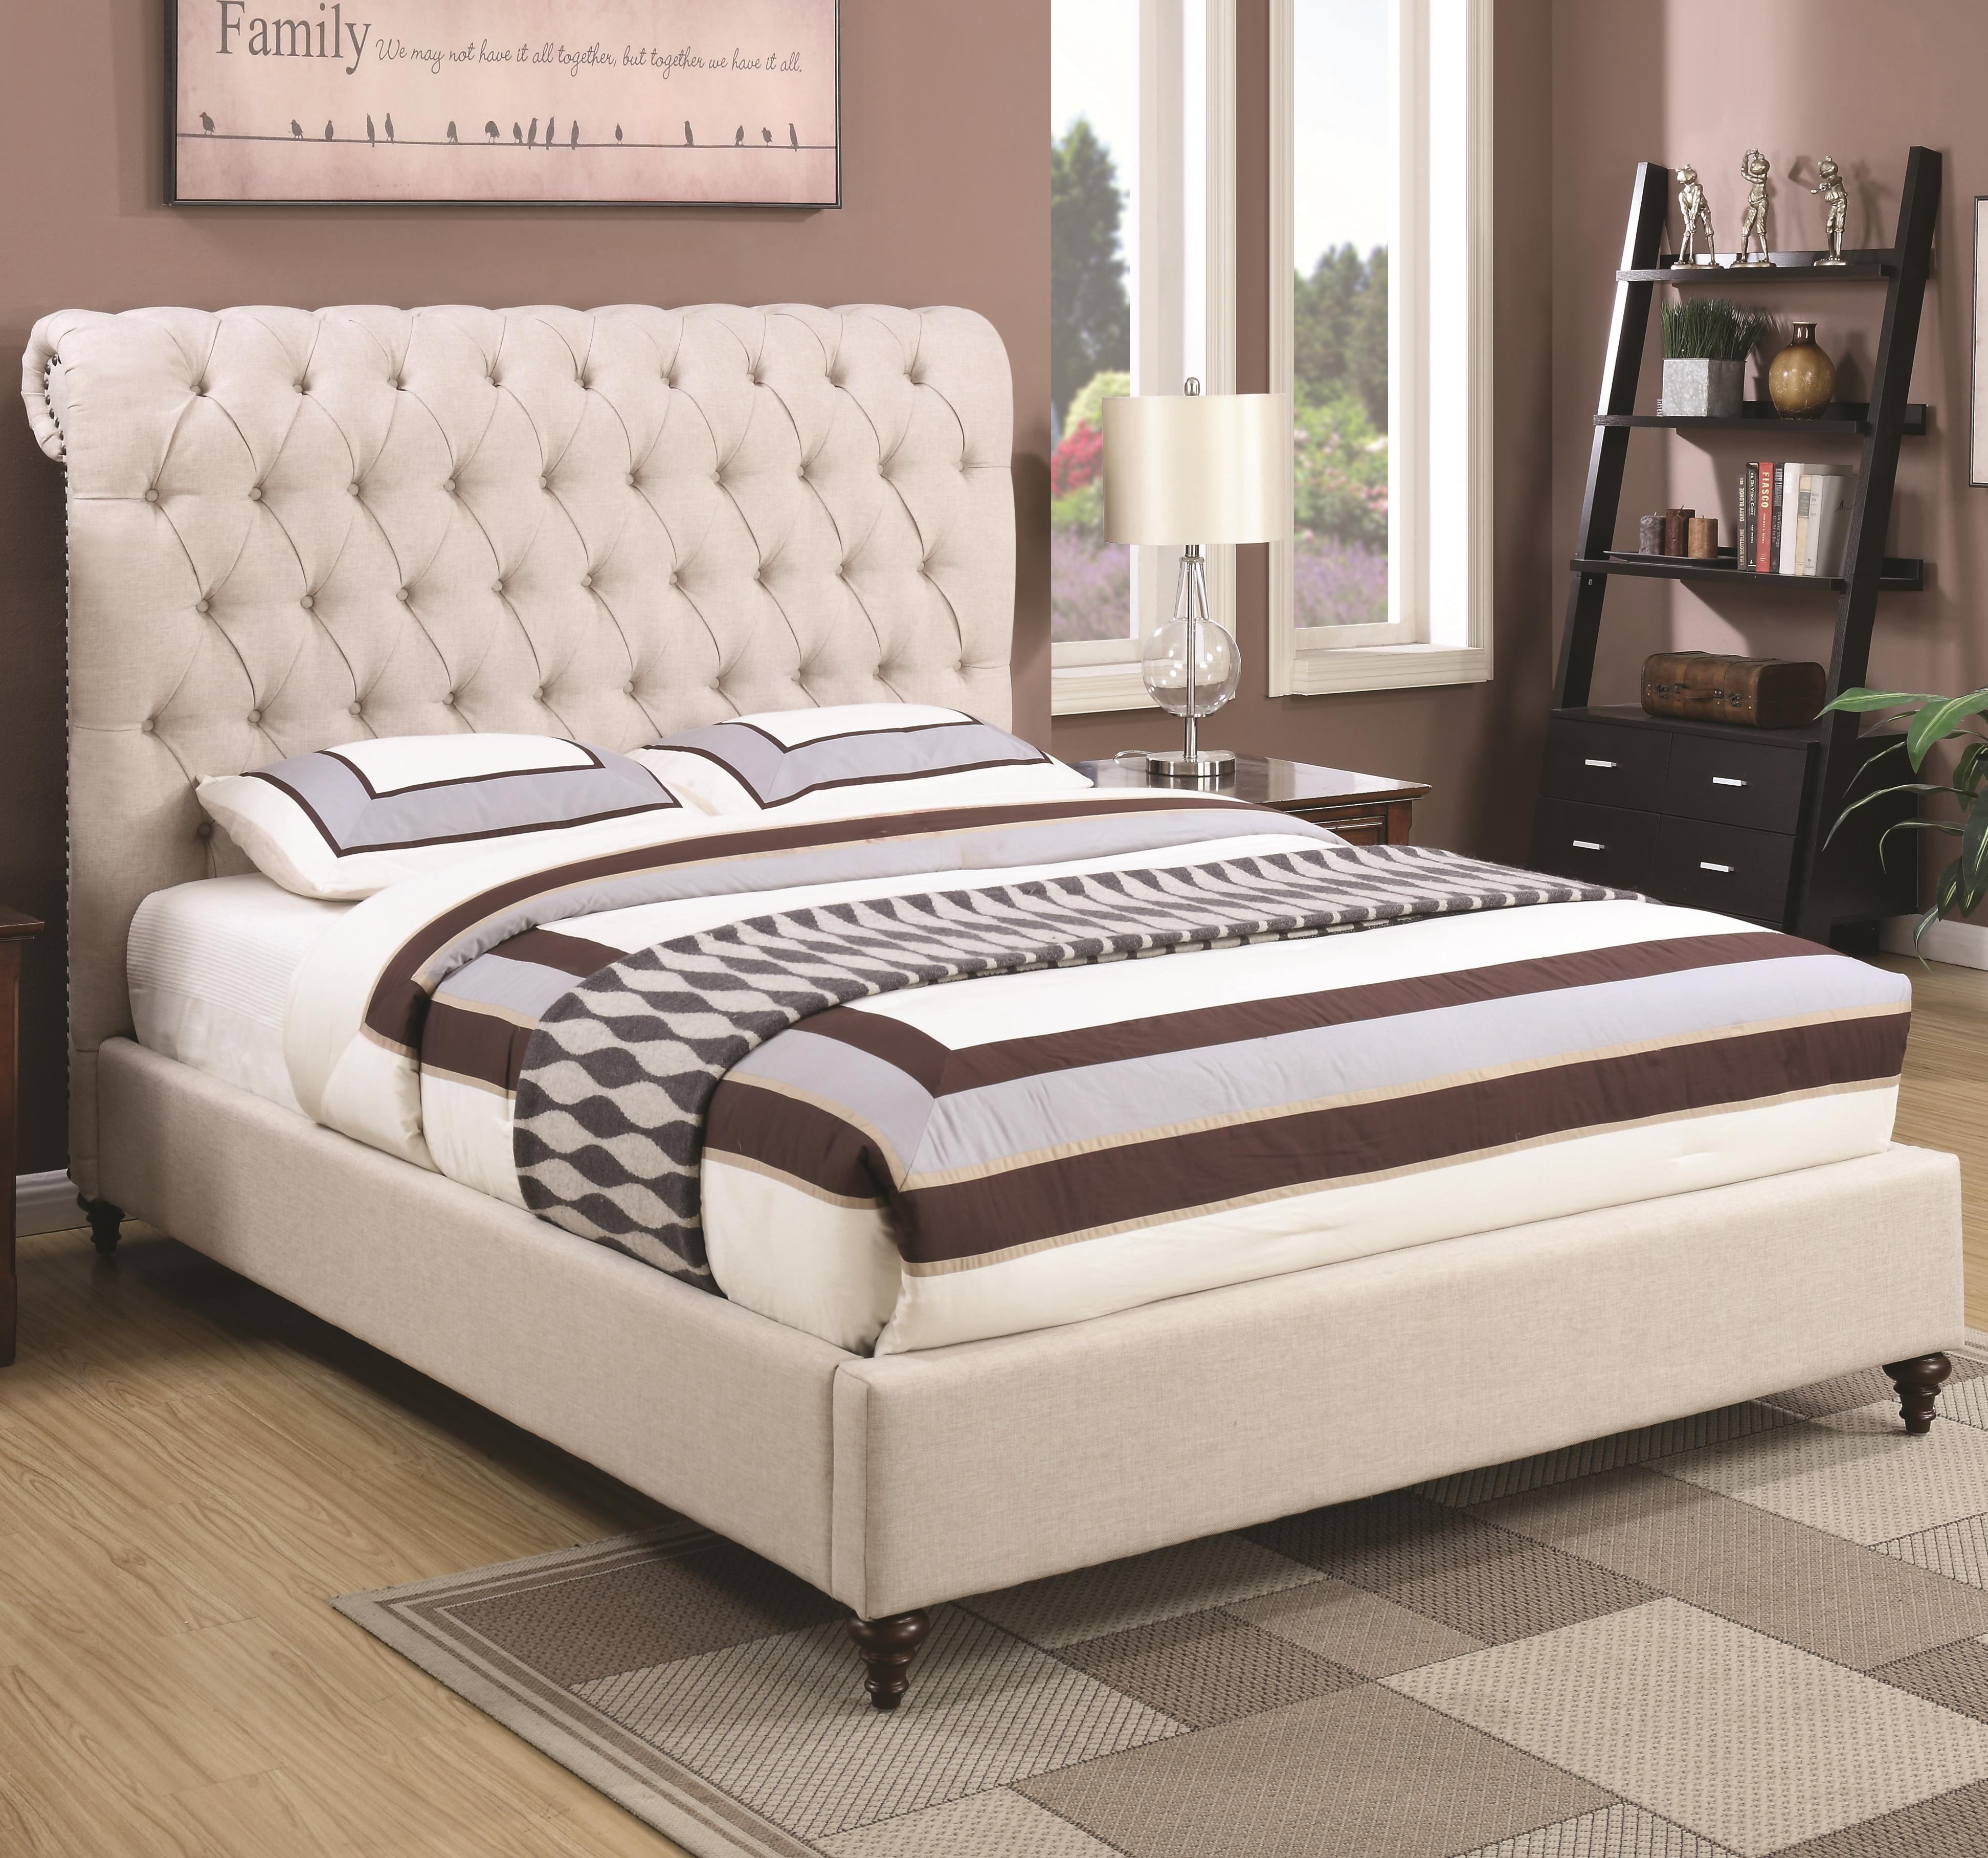 is leather the barbara legs uphostered tufted soft has size comfort queen metal faux style and in contemporary upholstered bed white with pin